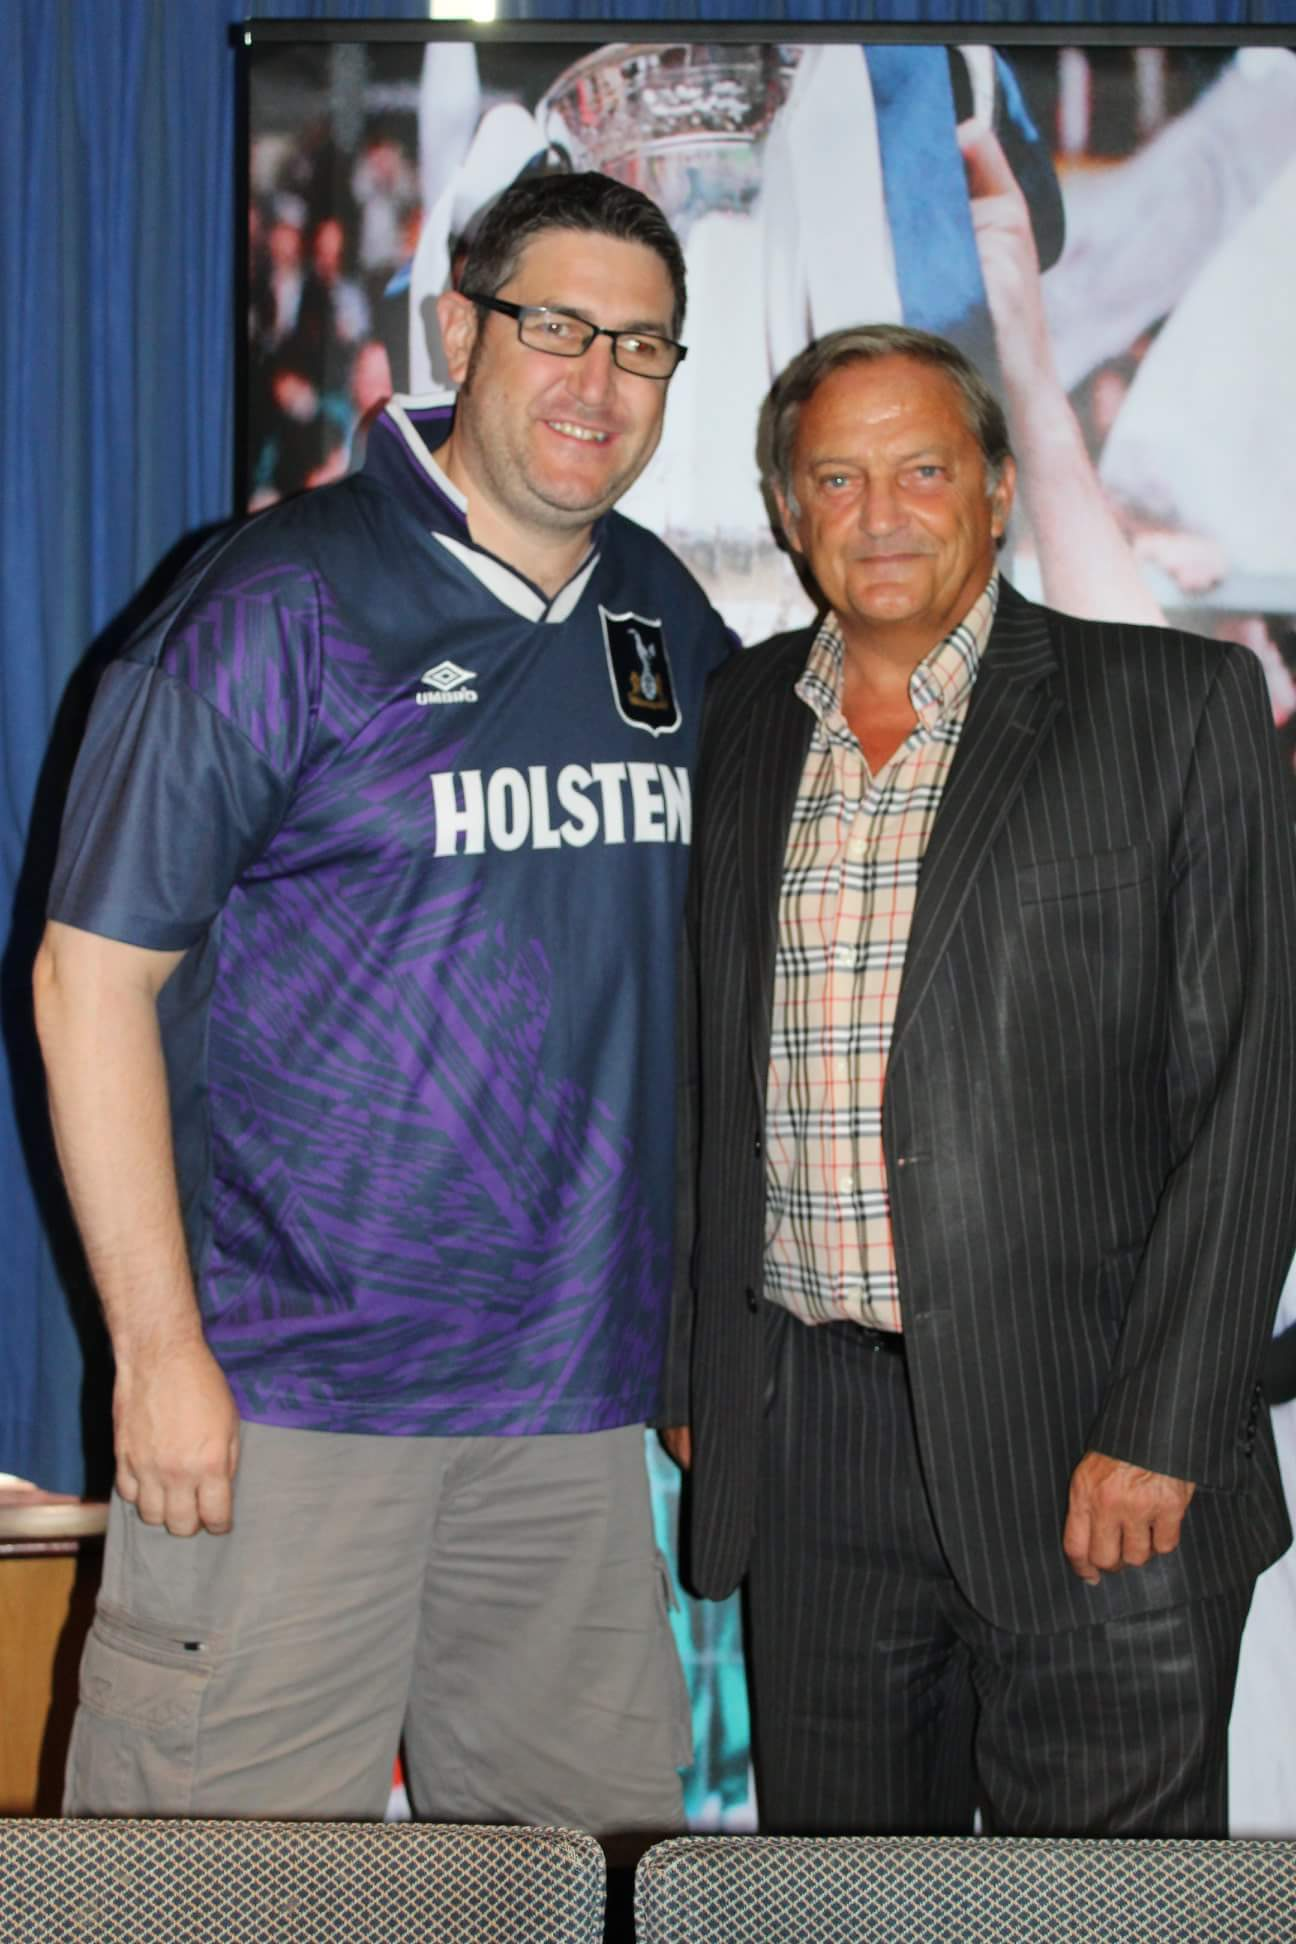 Morning guys happy birthday to our Captain Gary Mabbutt